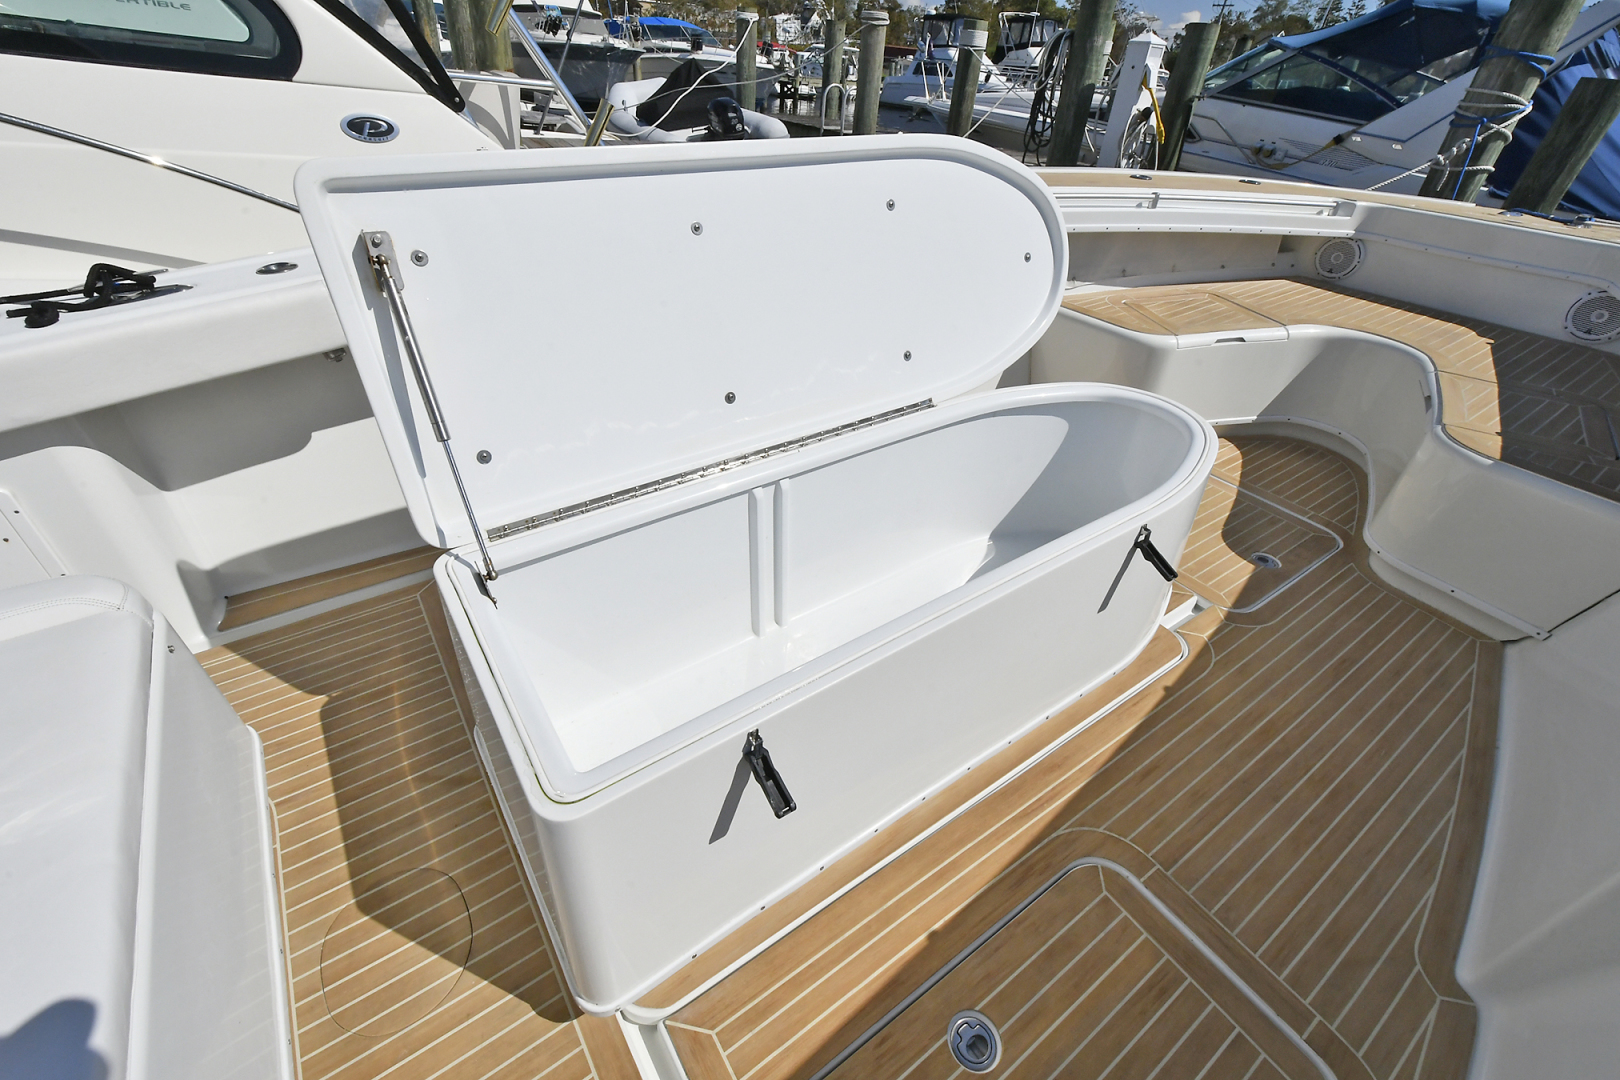 Yellowfin-36 Center Console 2019 -Patchogue-New York-United States-Coffin Box-1468832 | Thumbnail